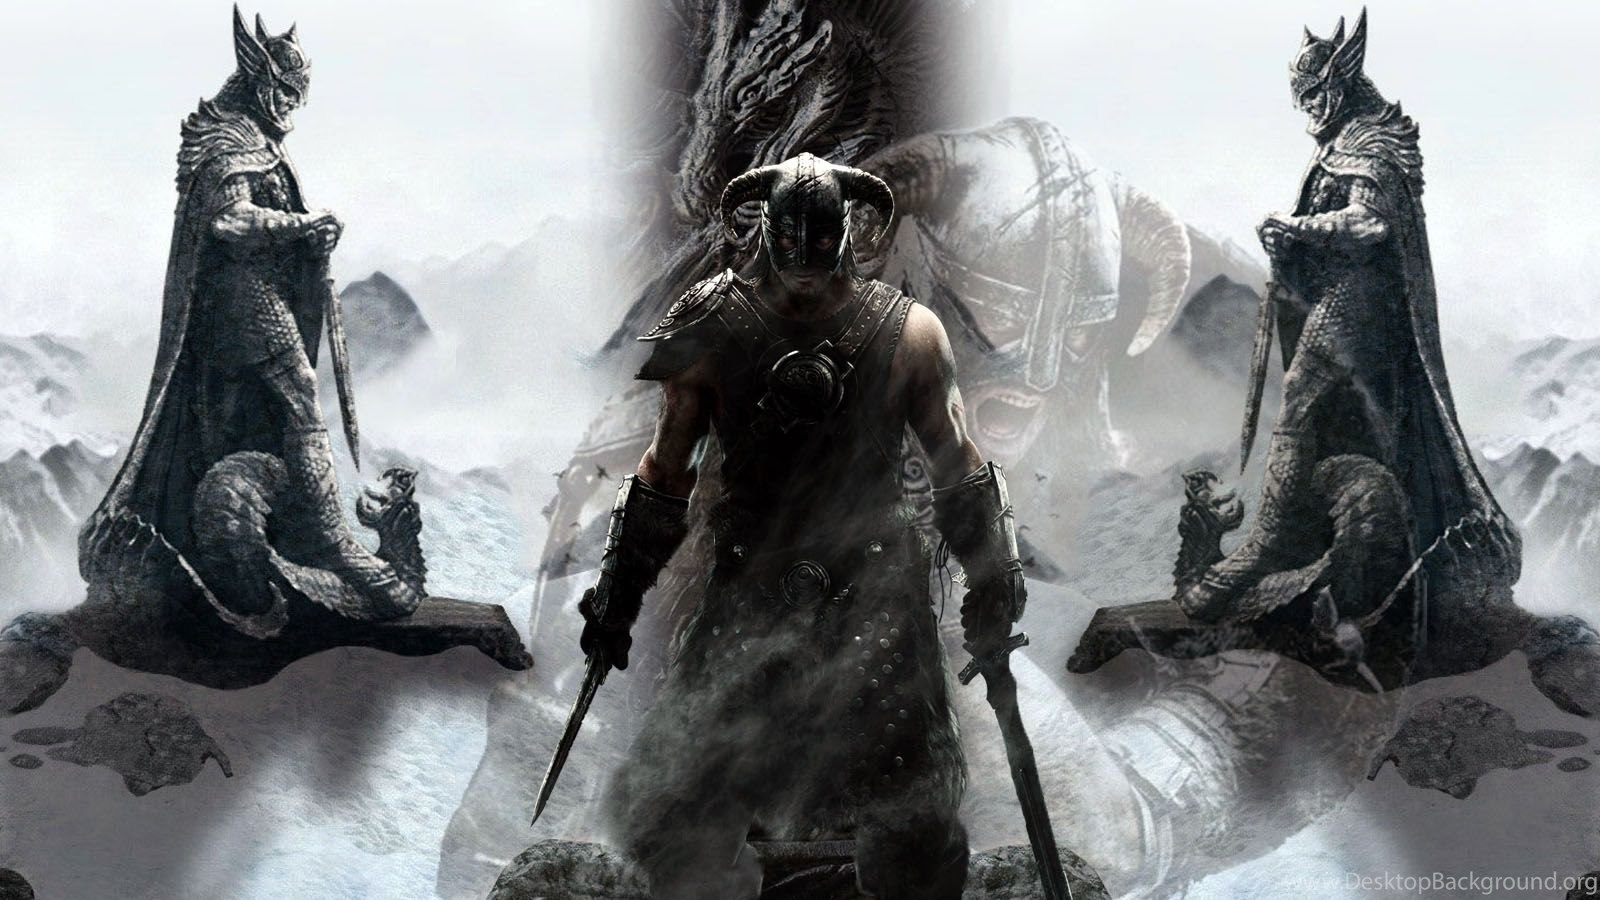 the elder scrolls v skyrim dragonborn wallpaper desktop background